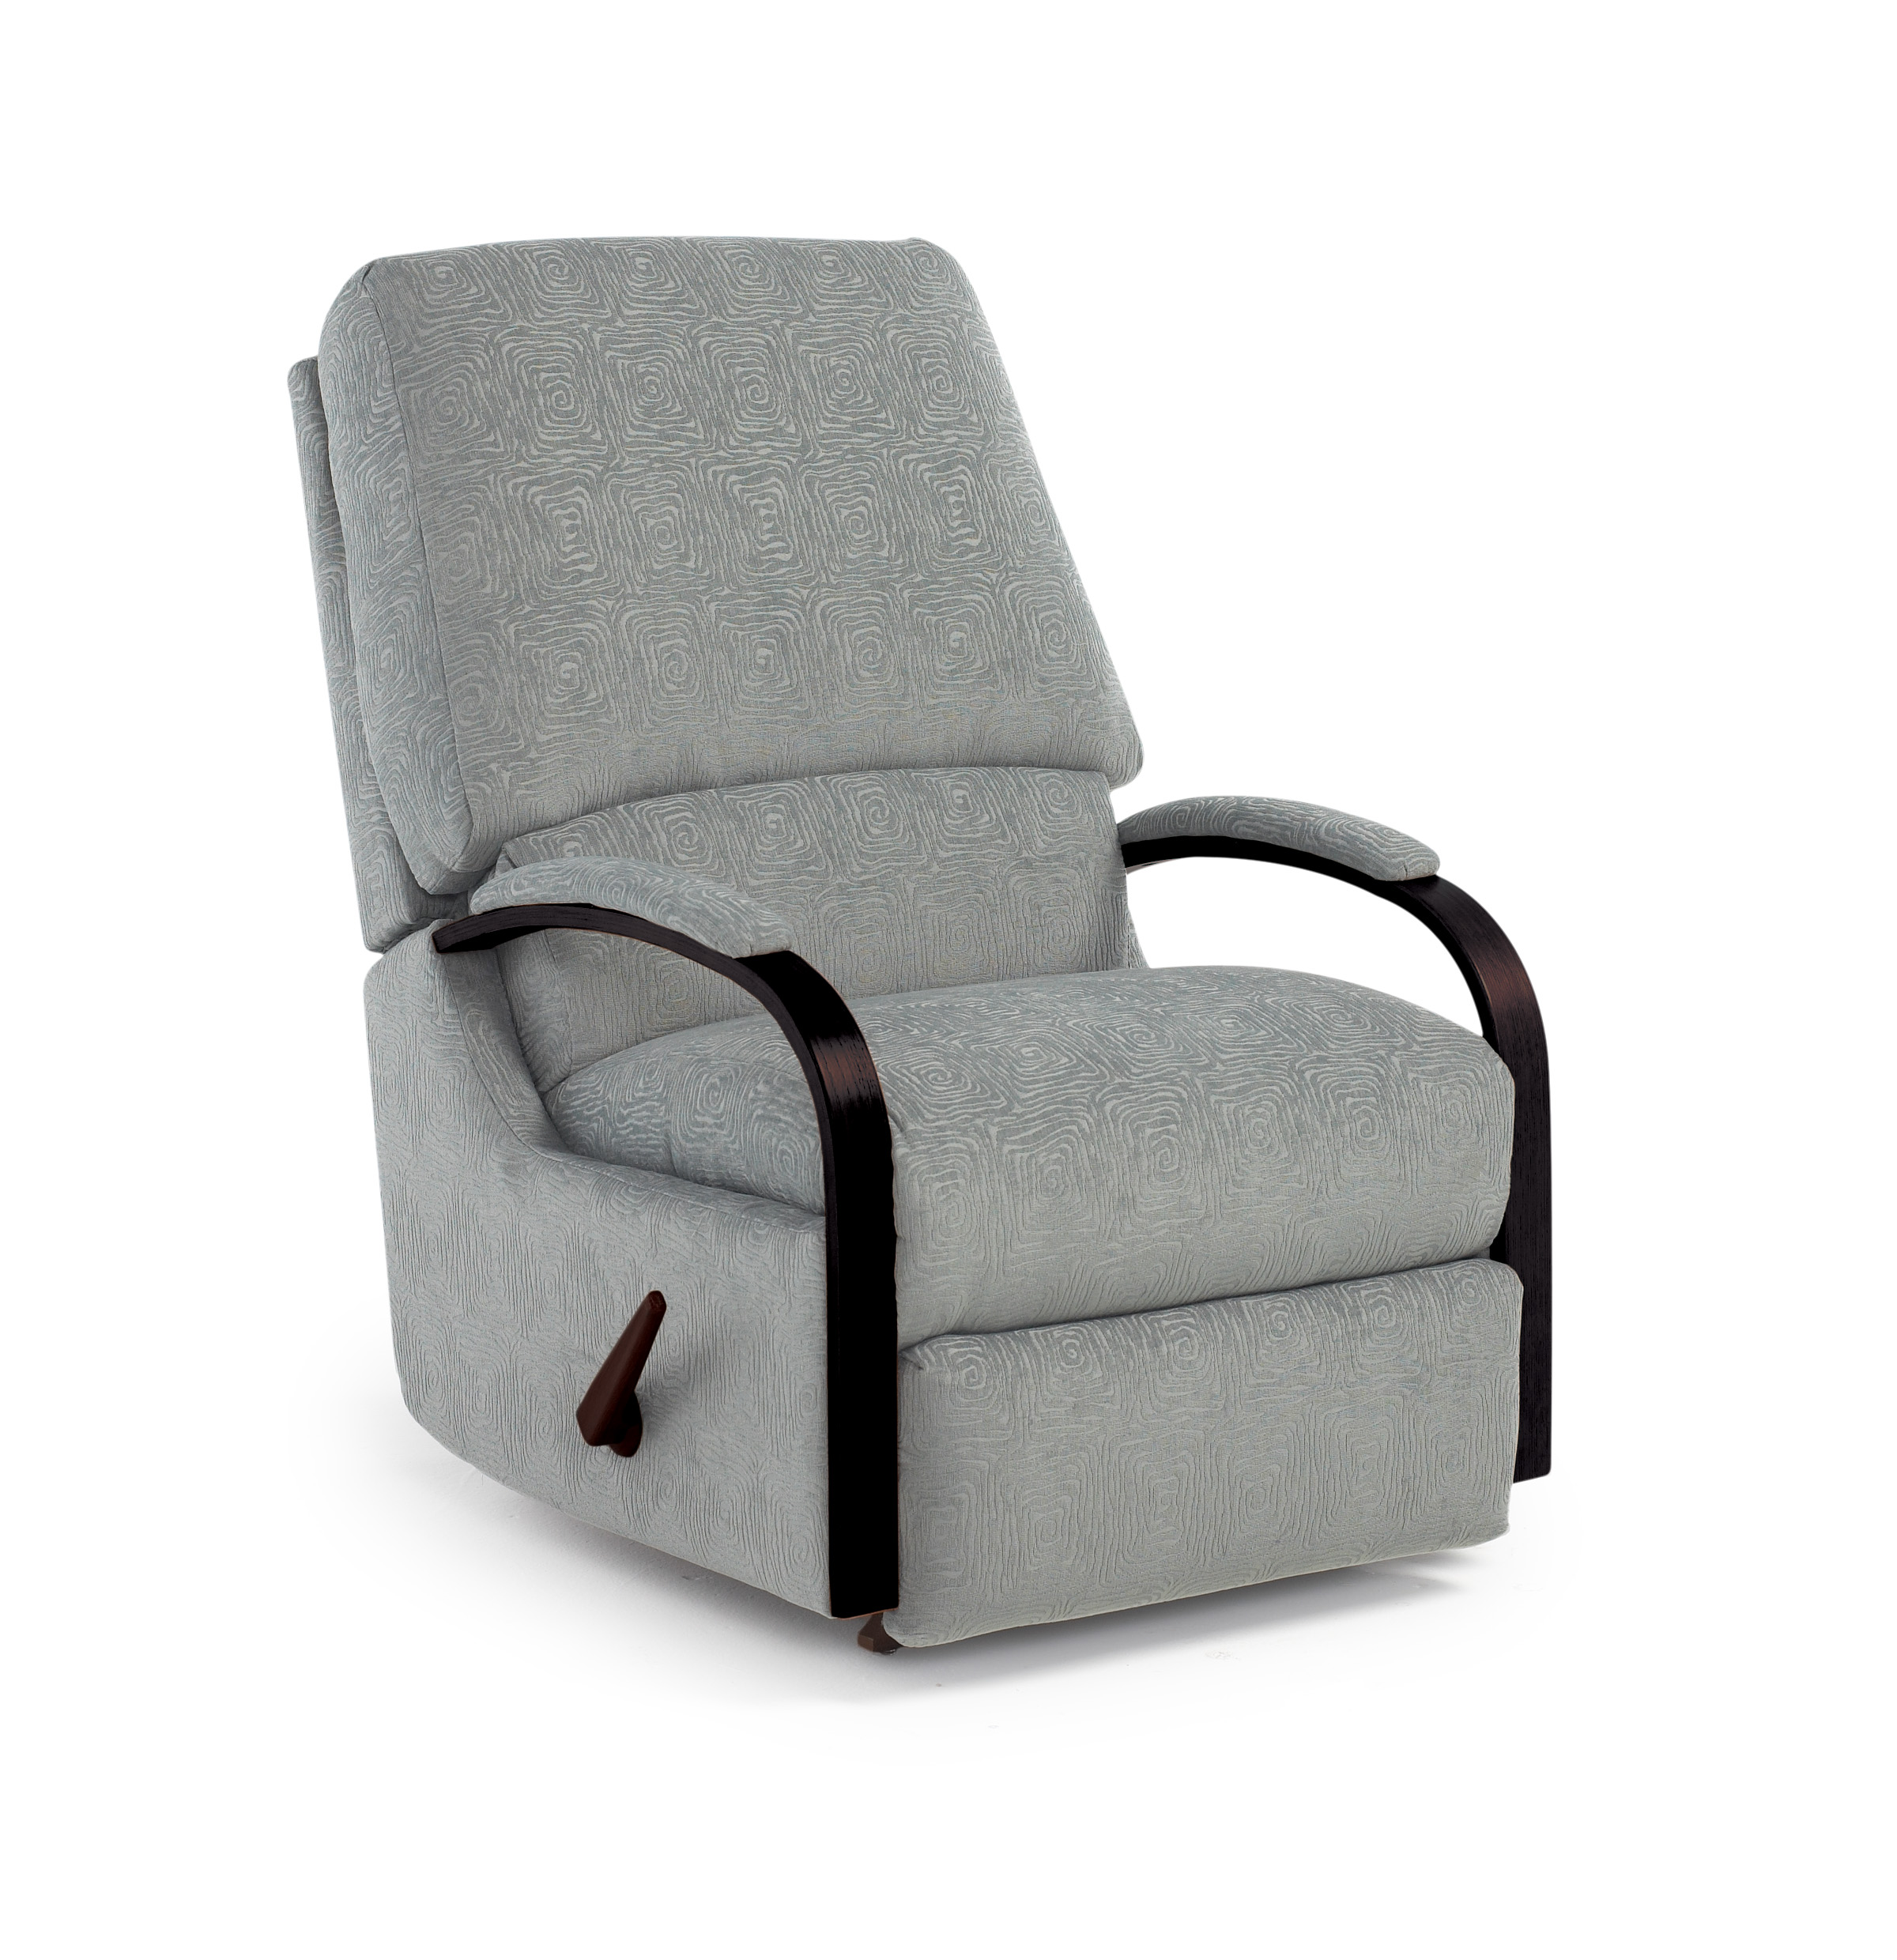 best-chairs-7nw07e